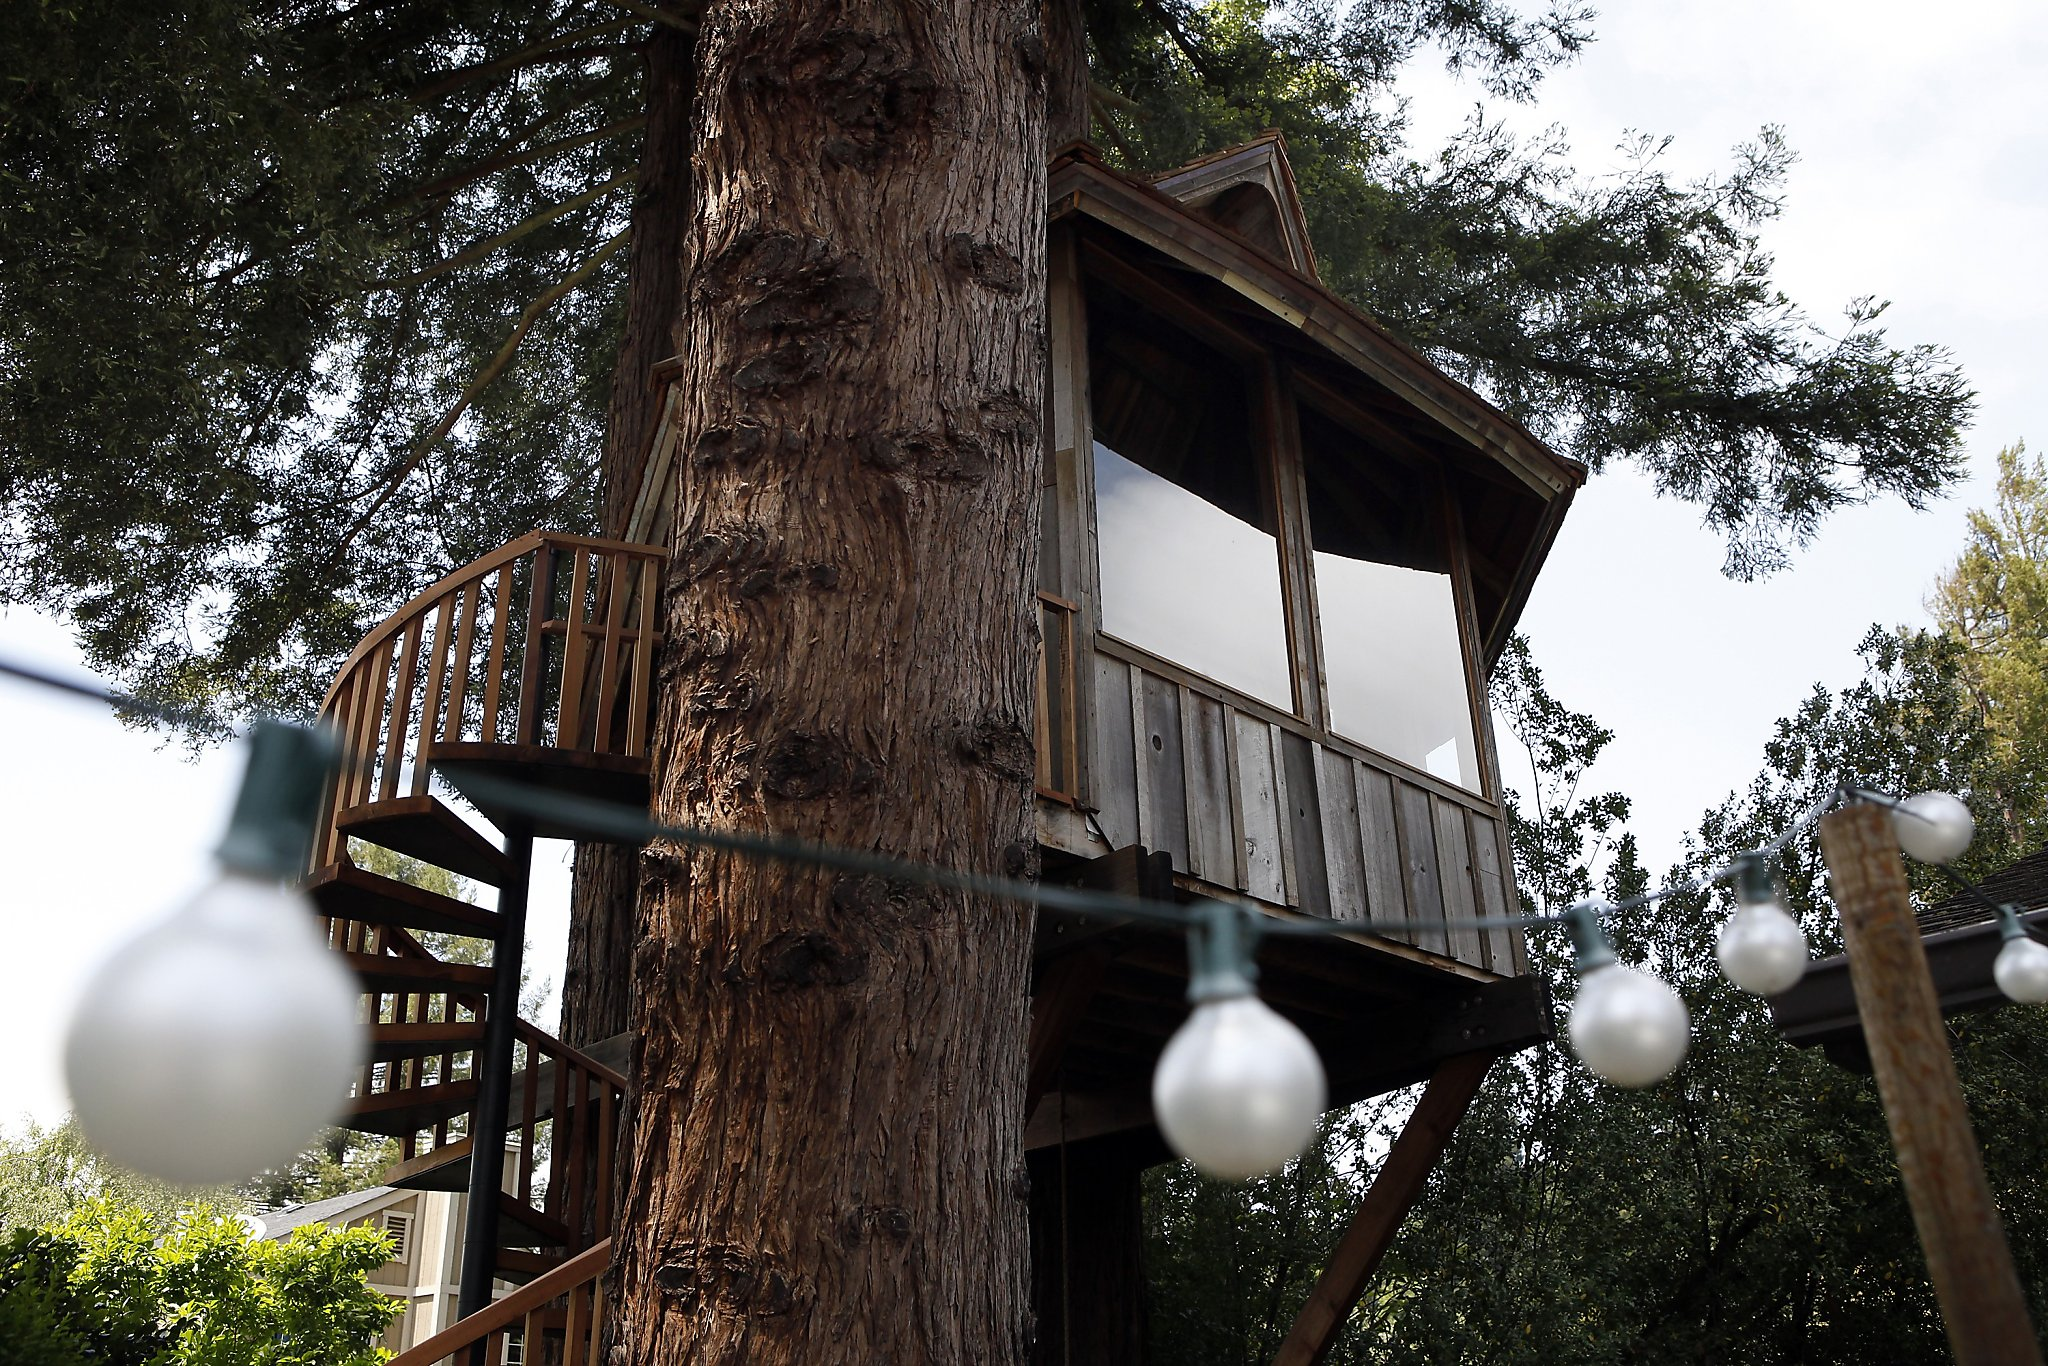 SFs Jay Nelson Builds Tree Houses As Works Of Art